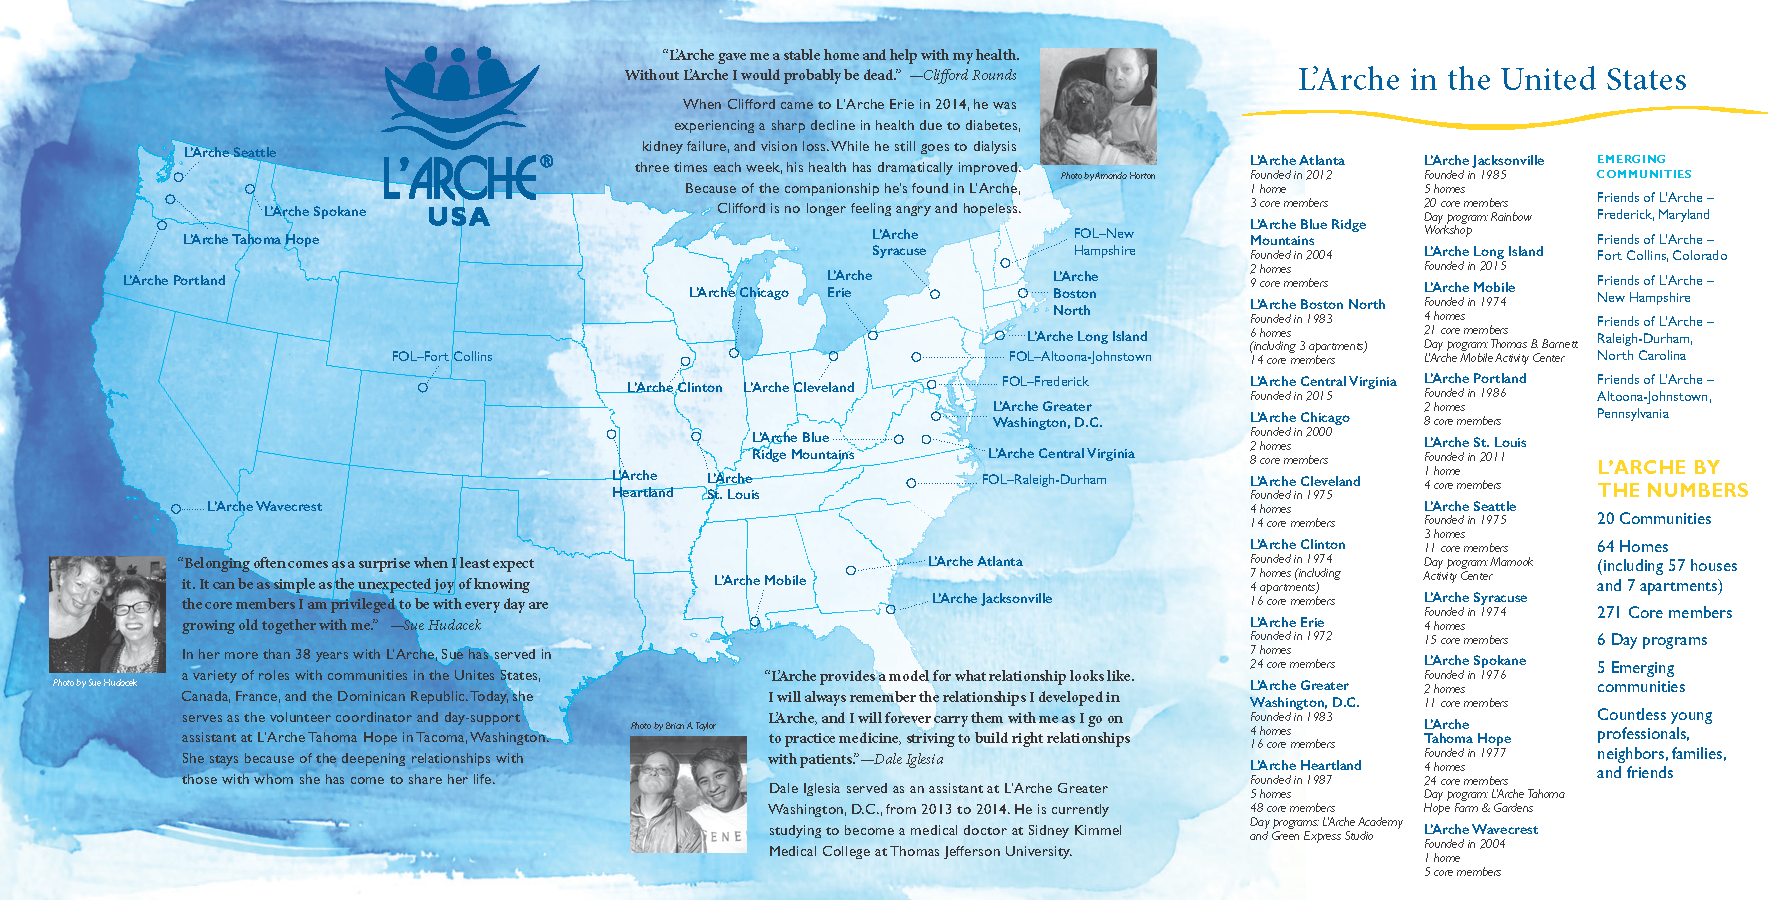 A map I designed showing all of the L'Arche locations in the United States.